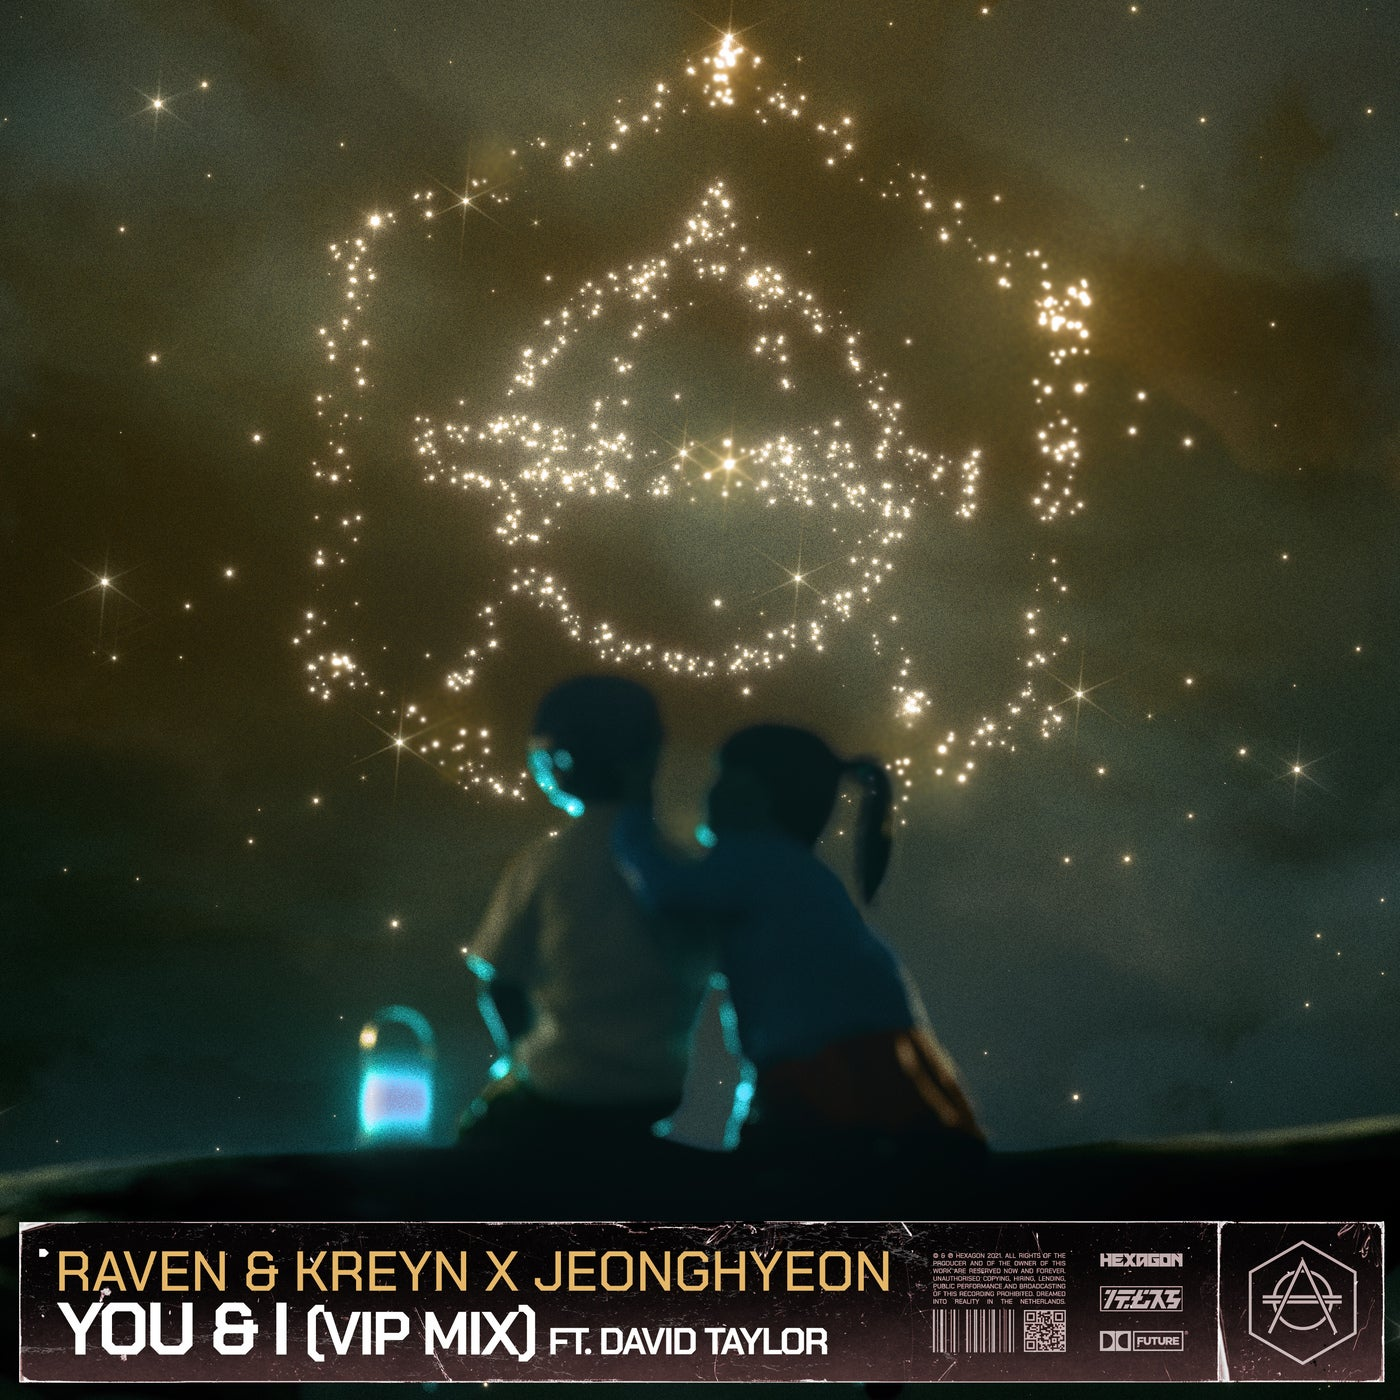 You & I feat. David Taylor (Extended VIP Mix)